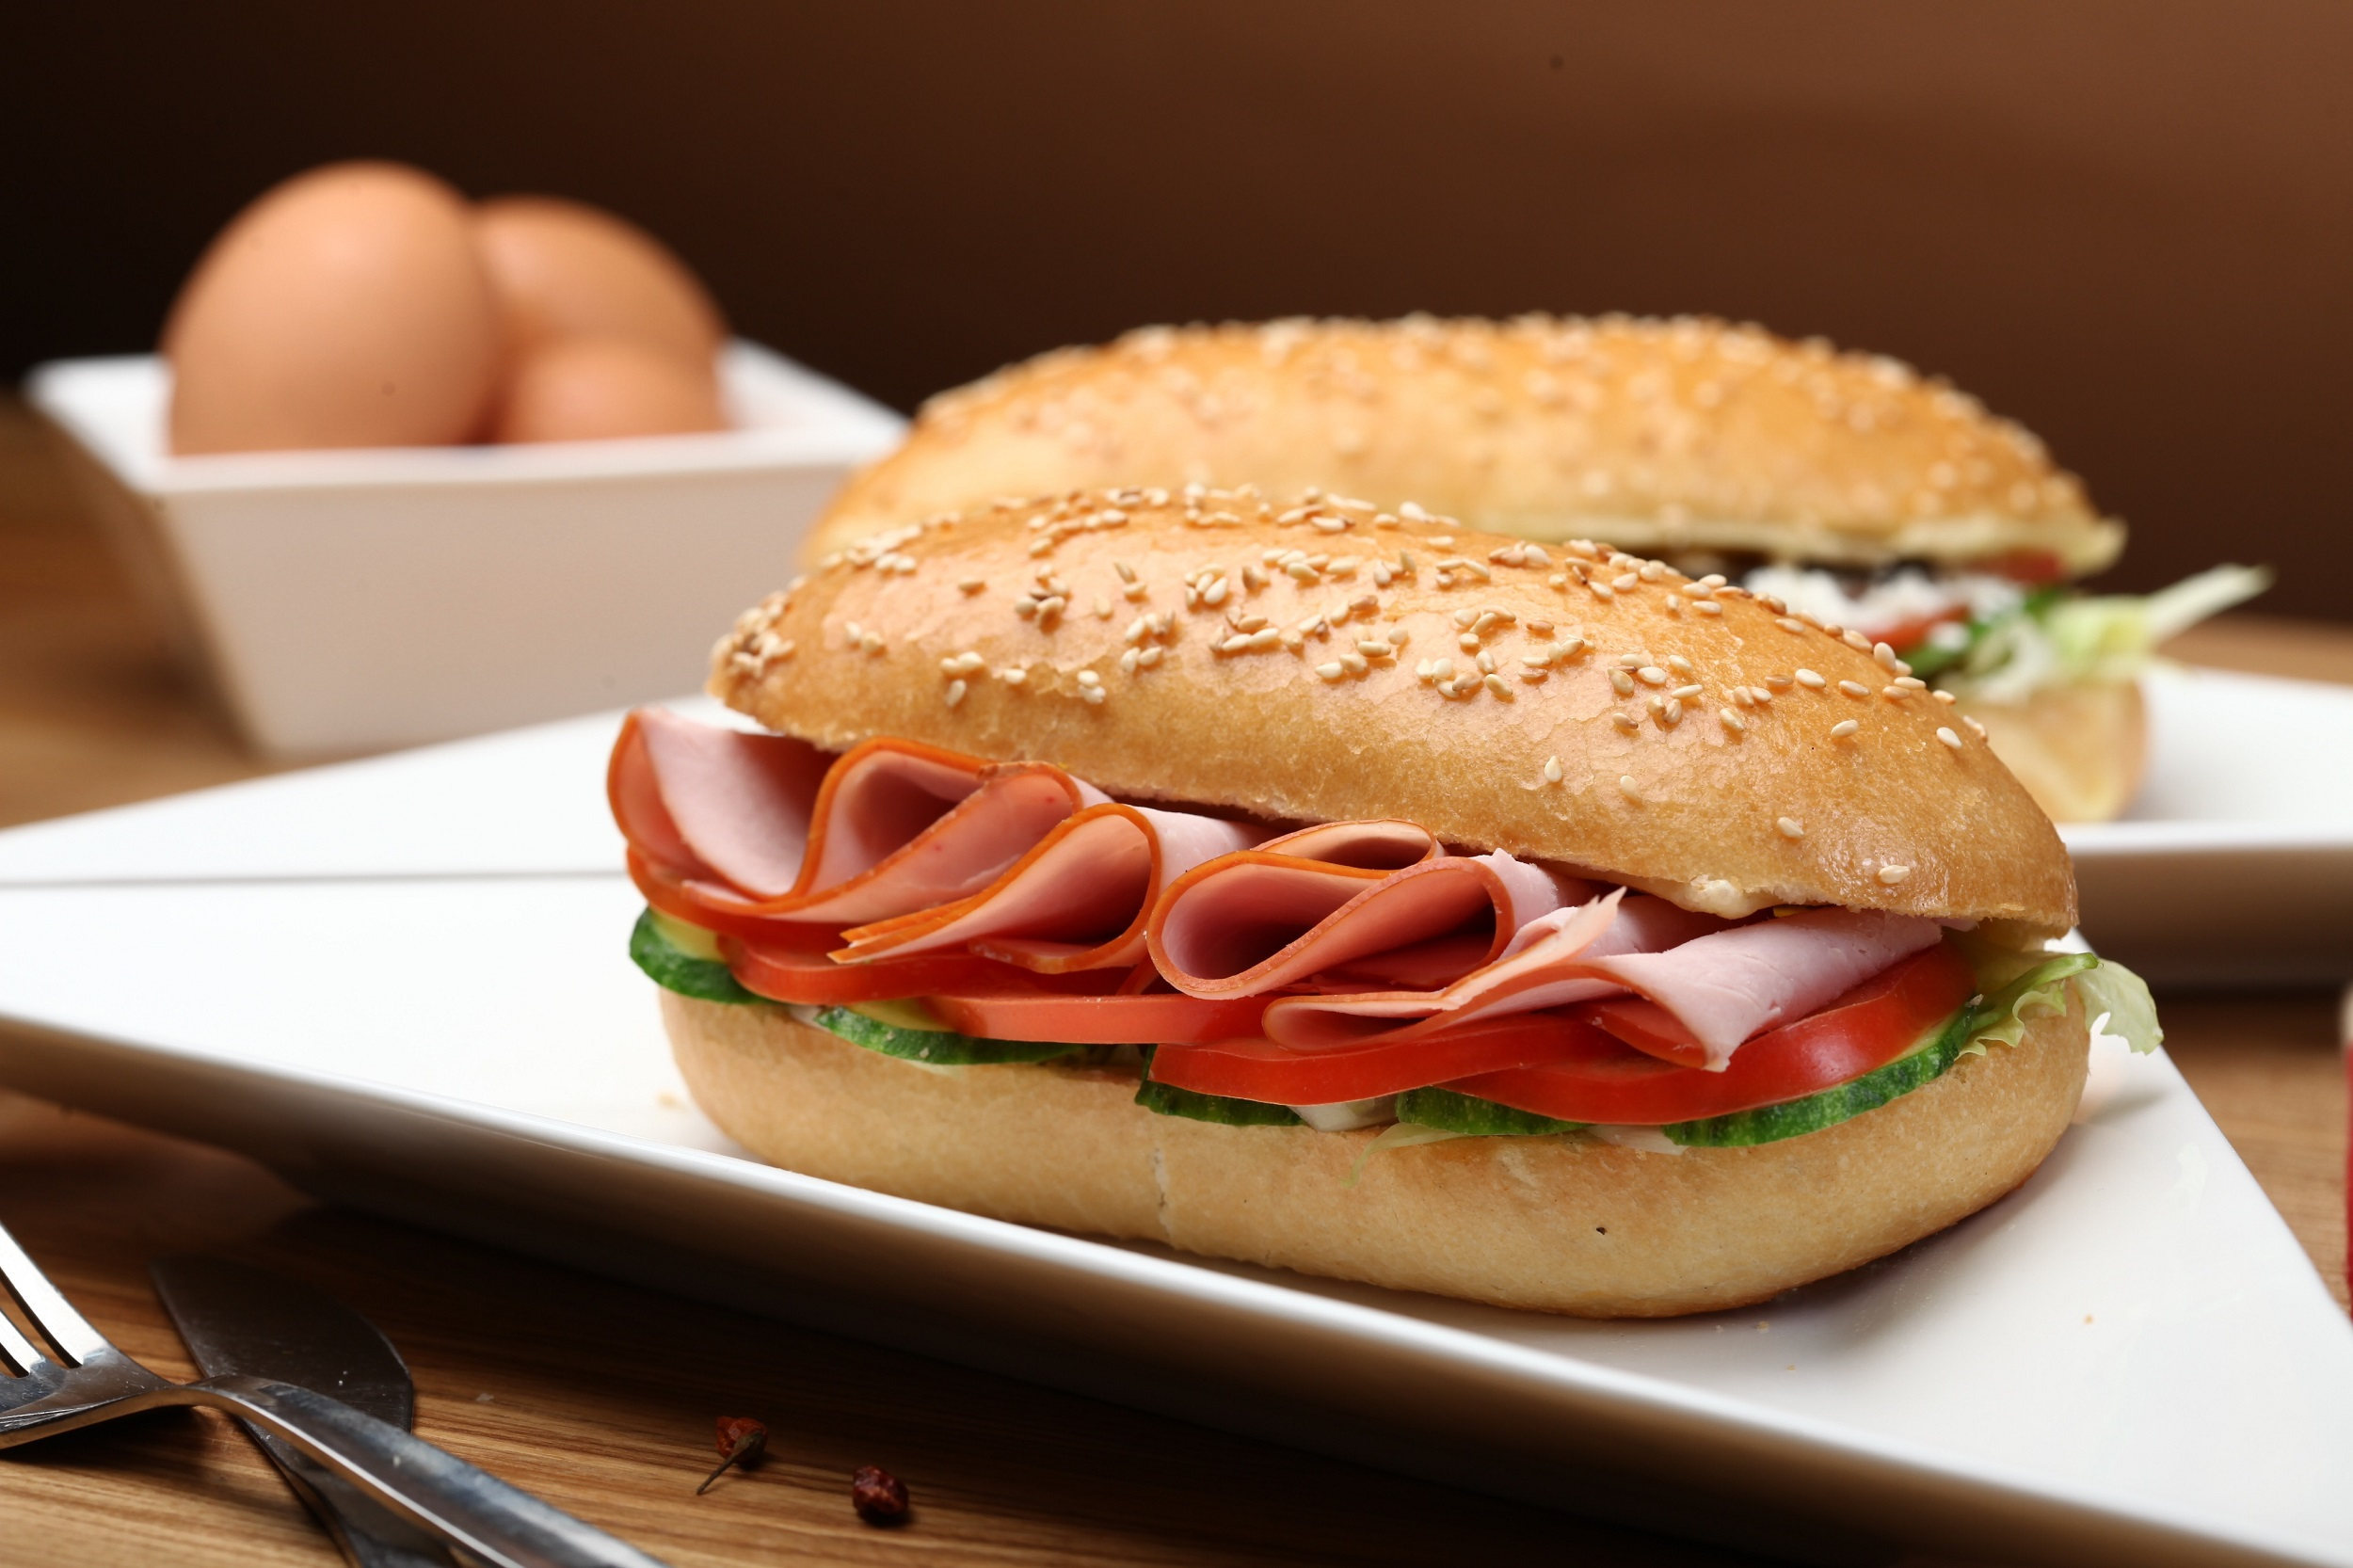 Photo_Web_Sandwich_Meat_060318